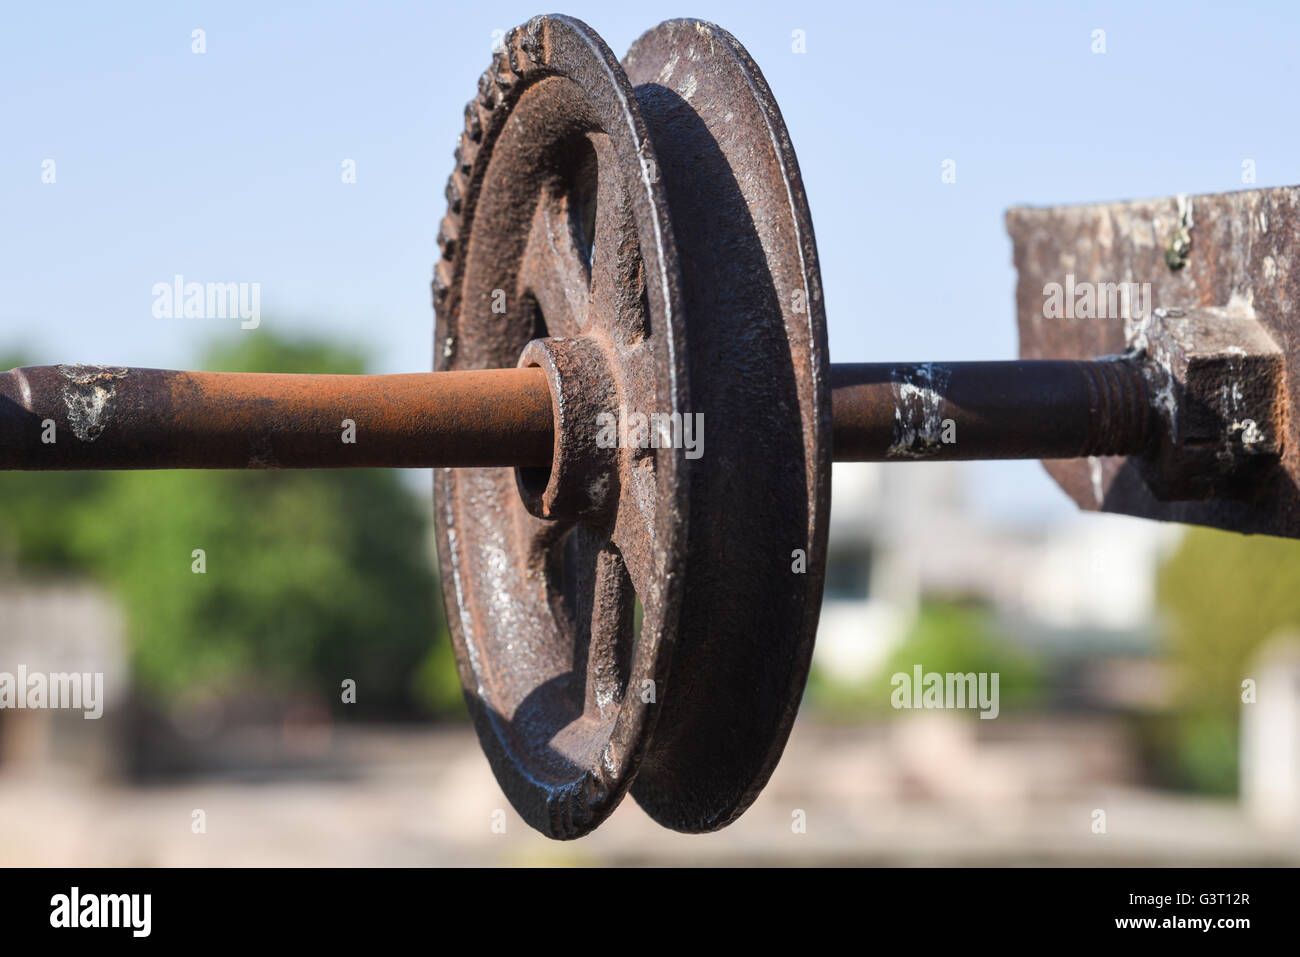 A old pulley at Adalaj Stepwell to pull water from the well in the outskirts of Ahmedabad, India - Stock Image